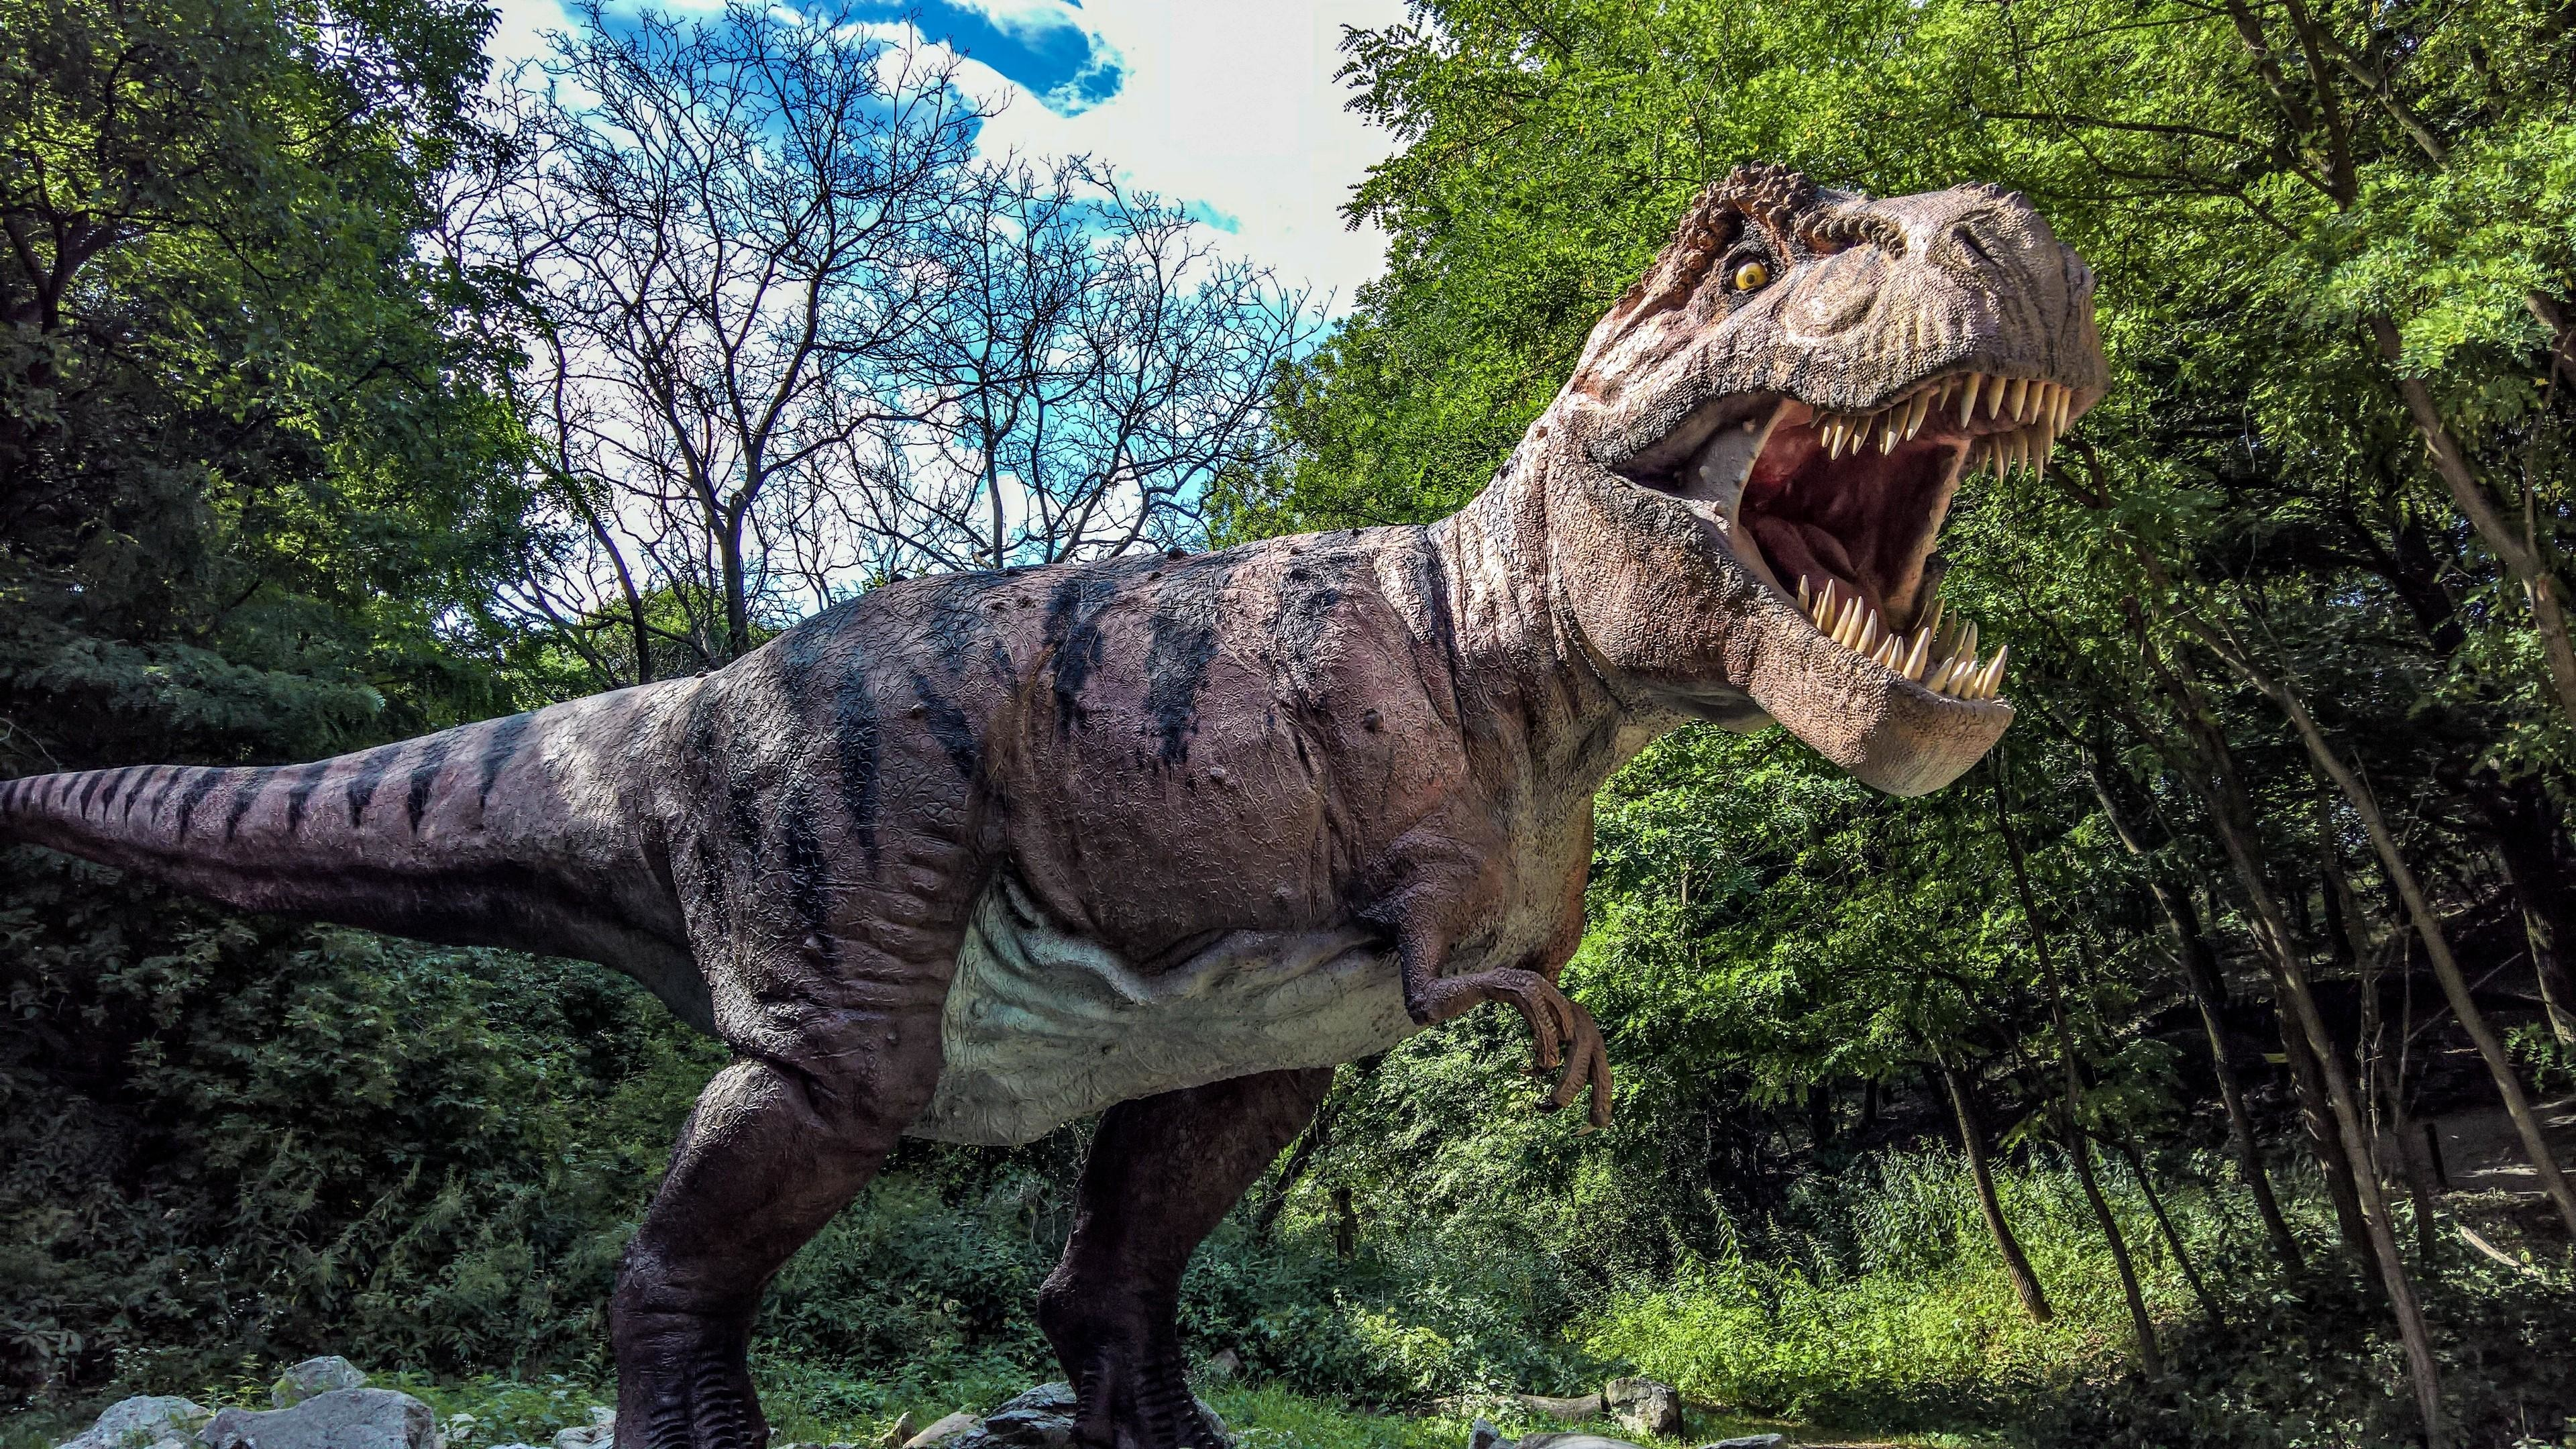 Res: 3840x2160, T-Rex Dino In The Dino Park, Bratislava, Slovakia Wallpaper | Wallpaper  Studio 10 | Tens of thousands HD and UltraHD wallpapers for Android, ...